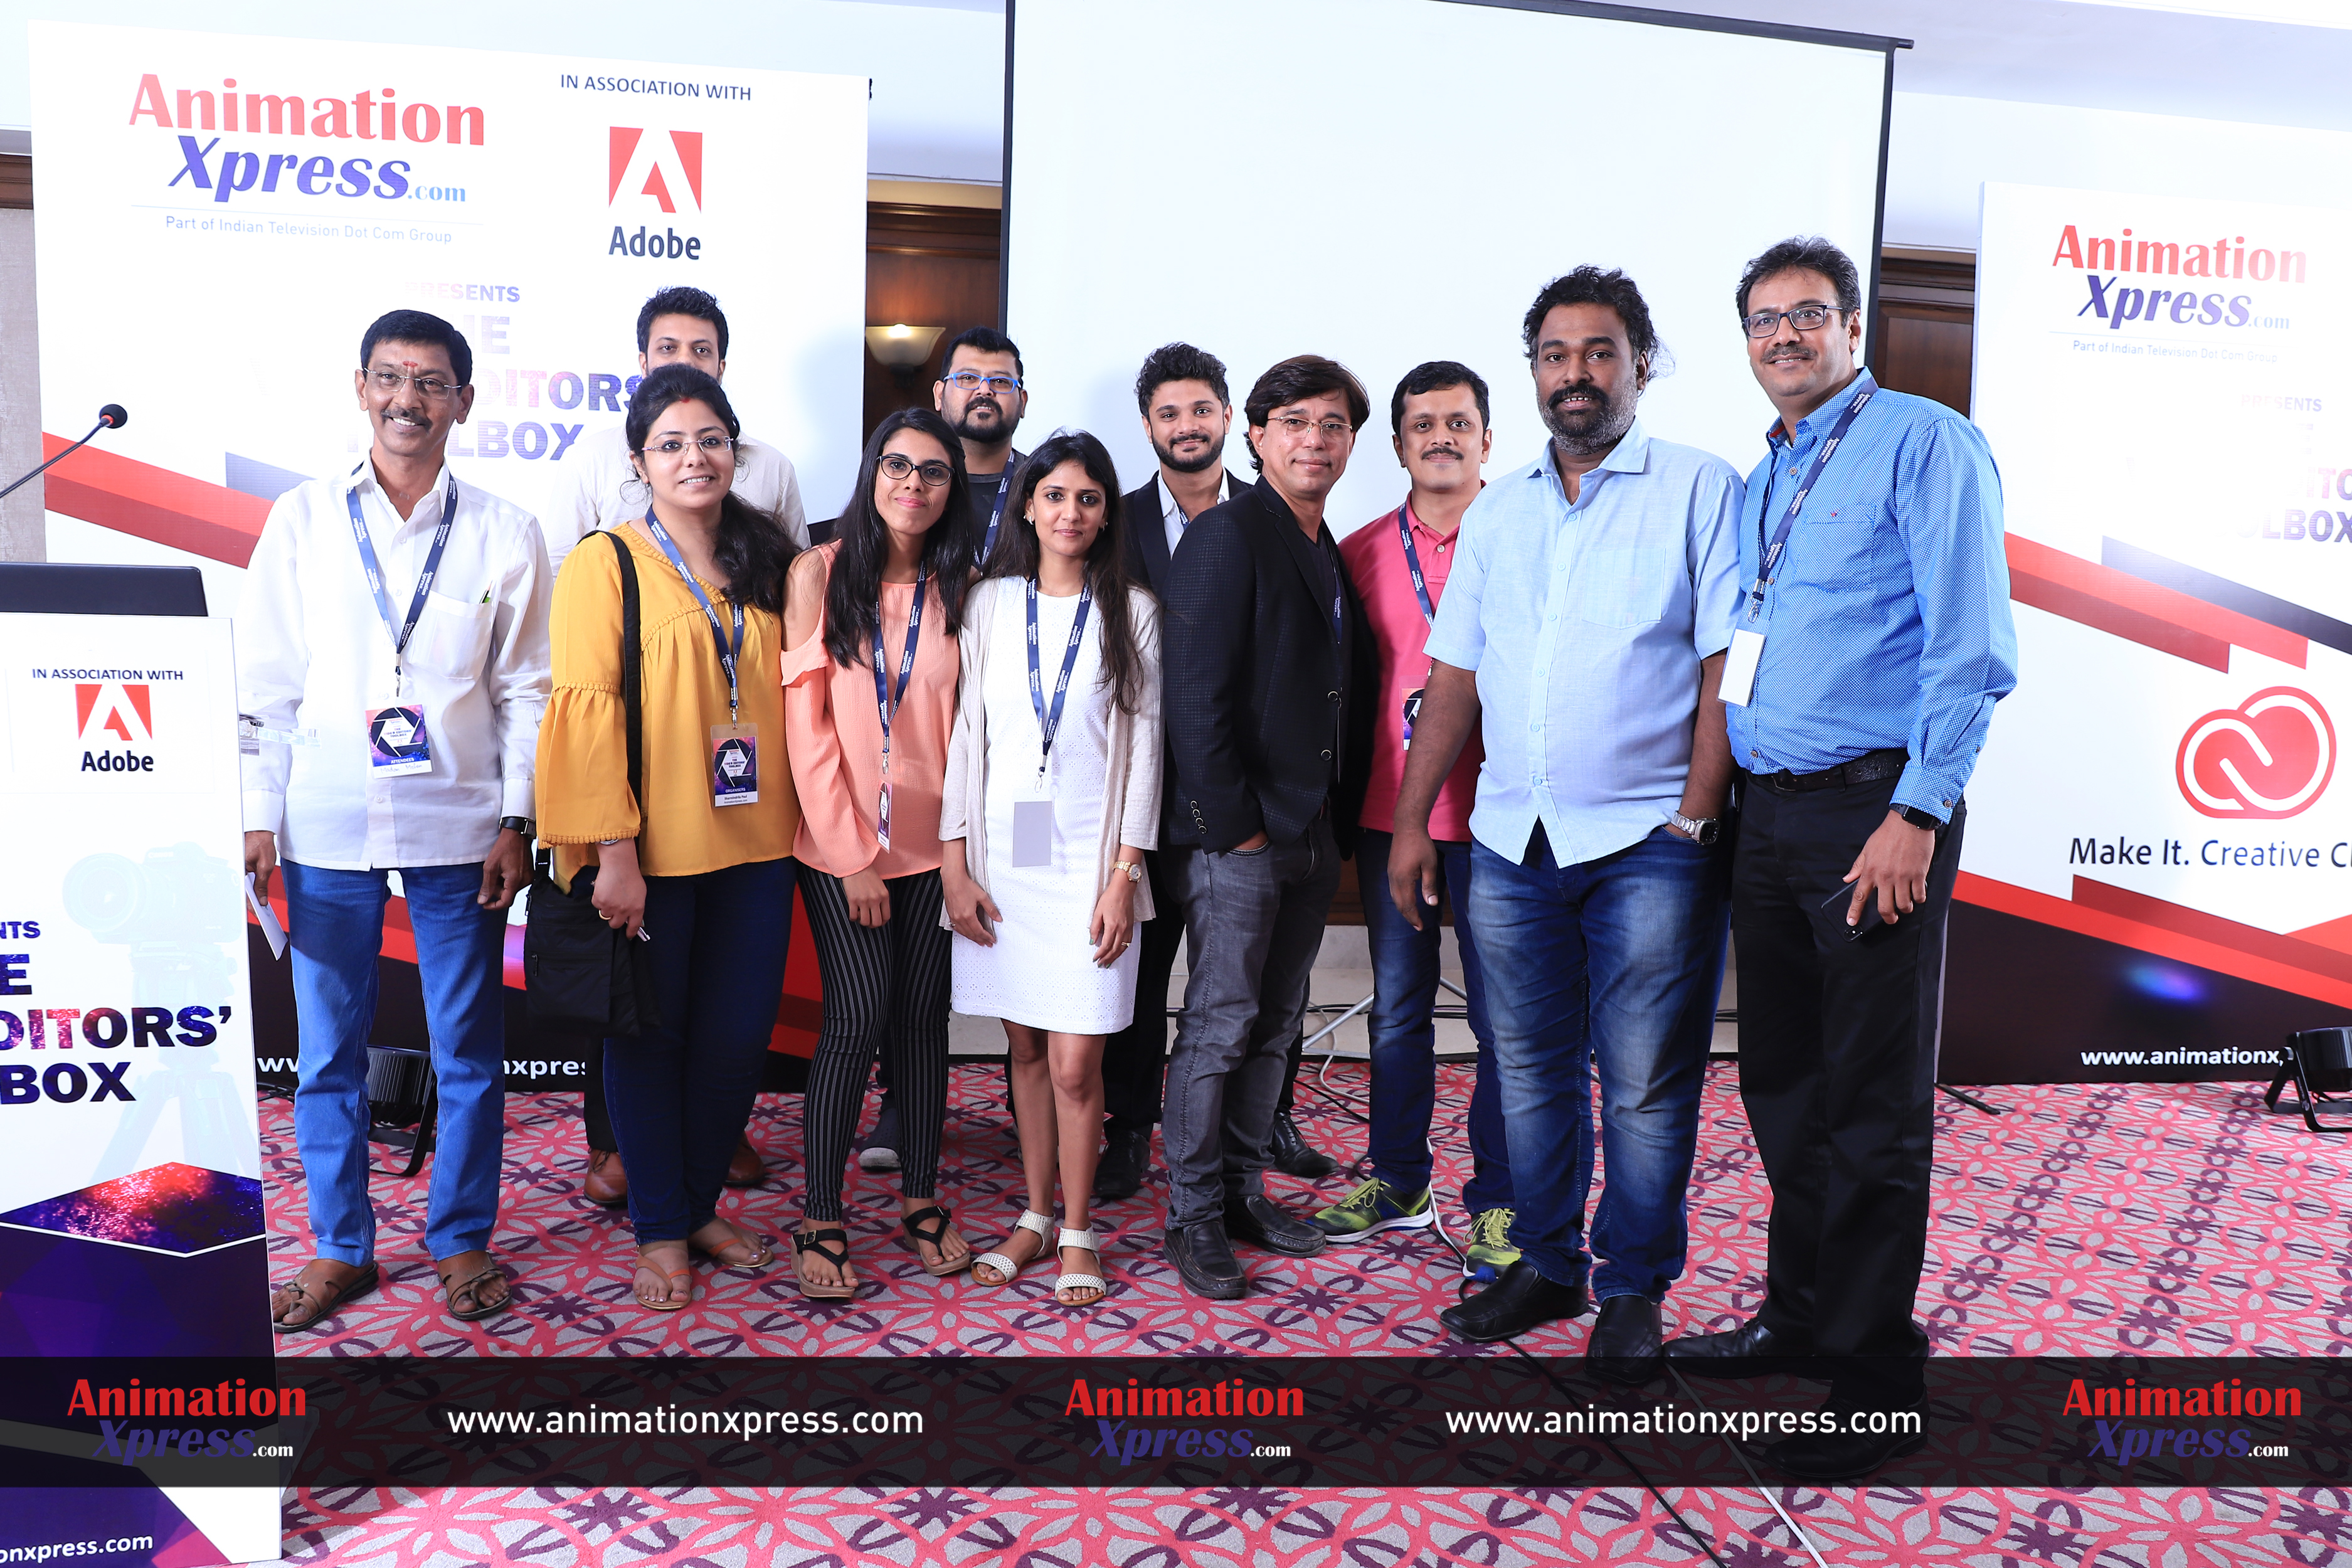 AnimationXpress and the Adobe team after the event